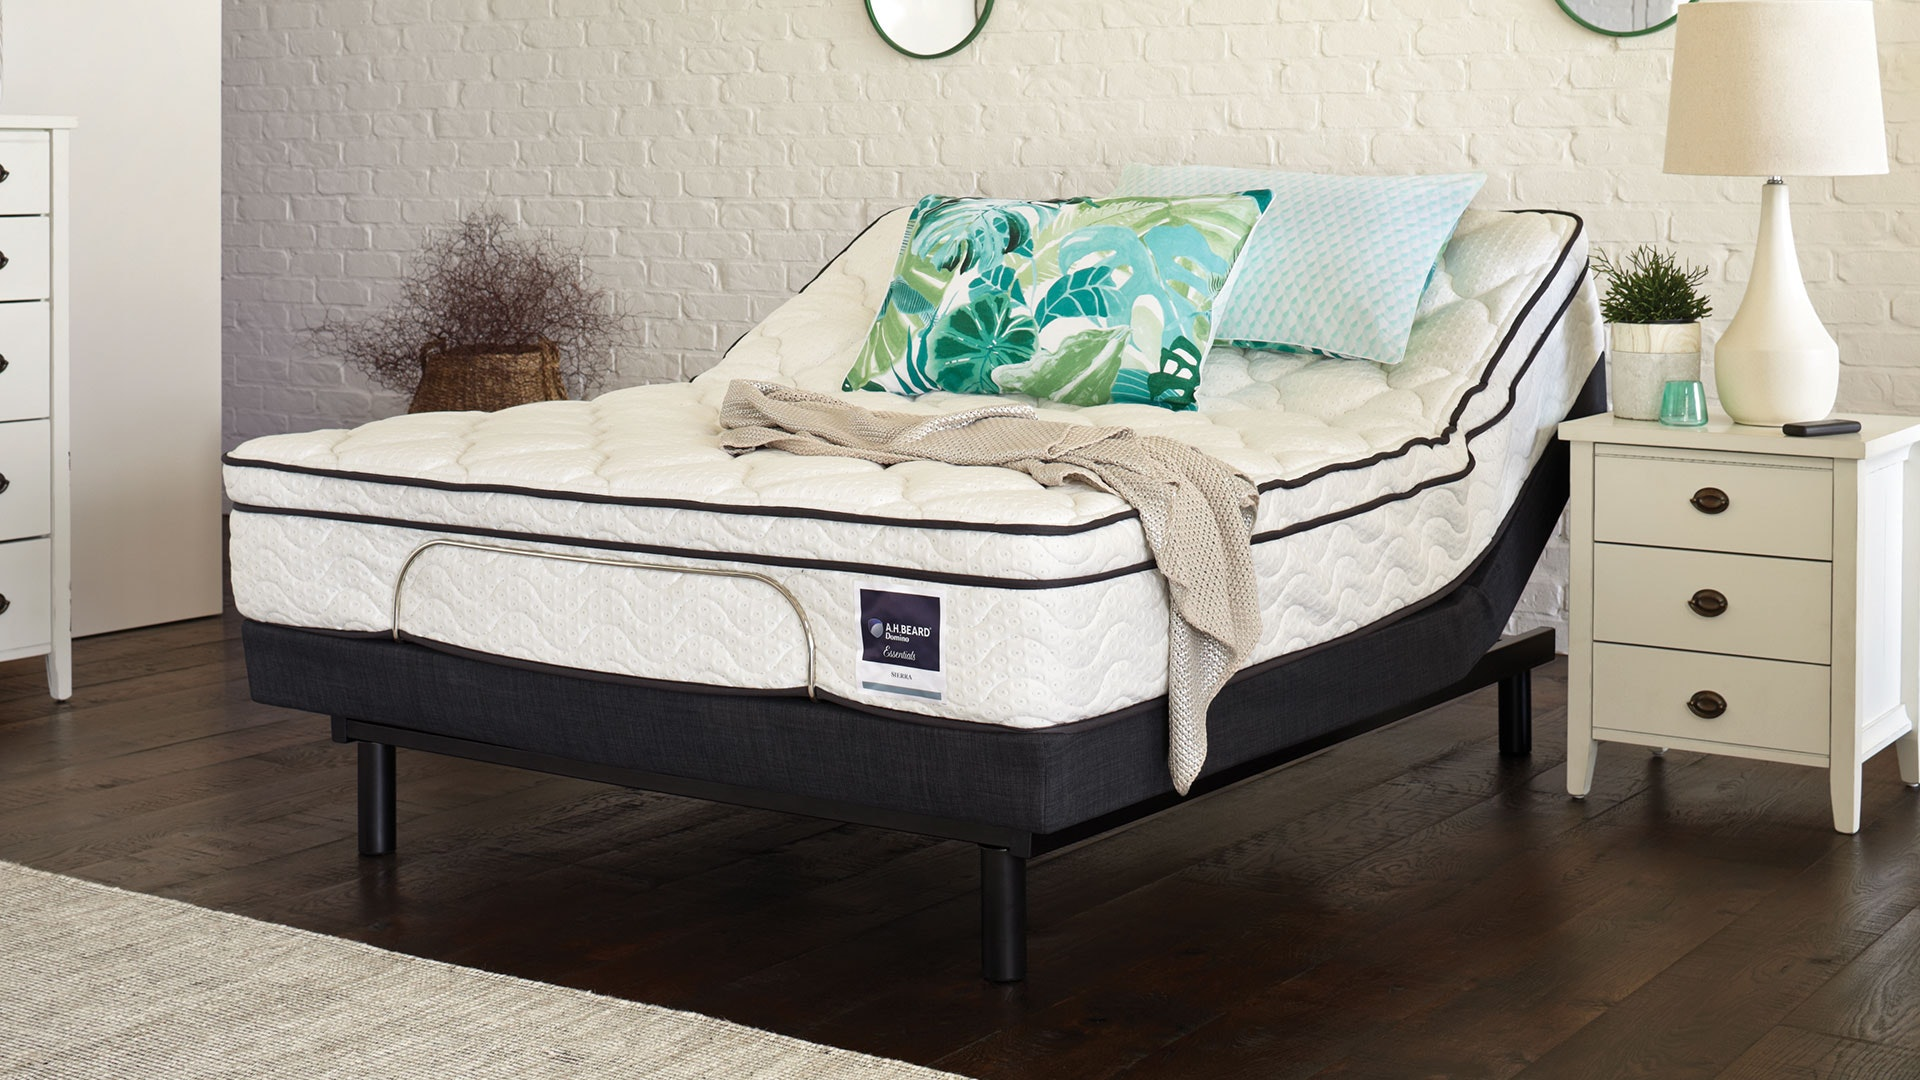 A.H. Beard Sierra Queen Mattress with Lifestyle Adjustable Base by Tempur